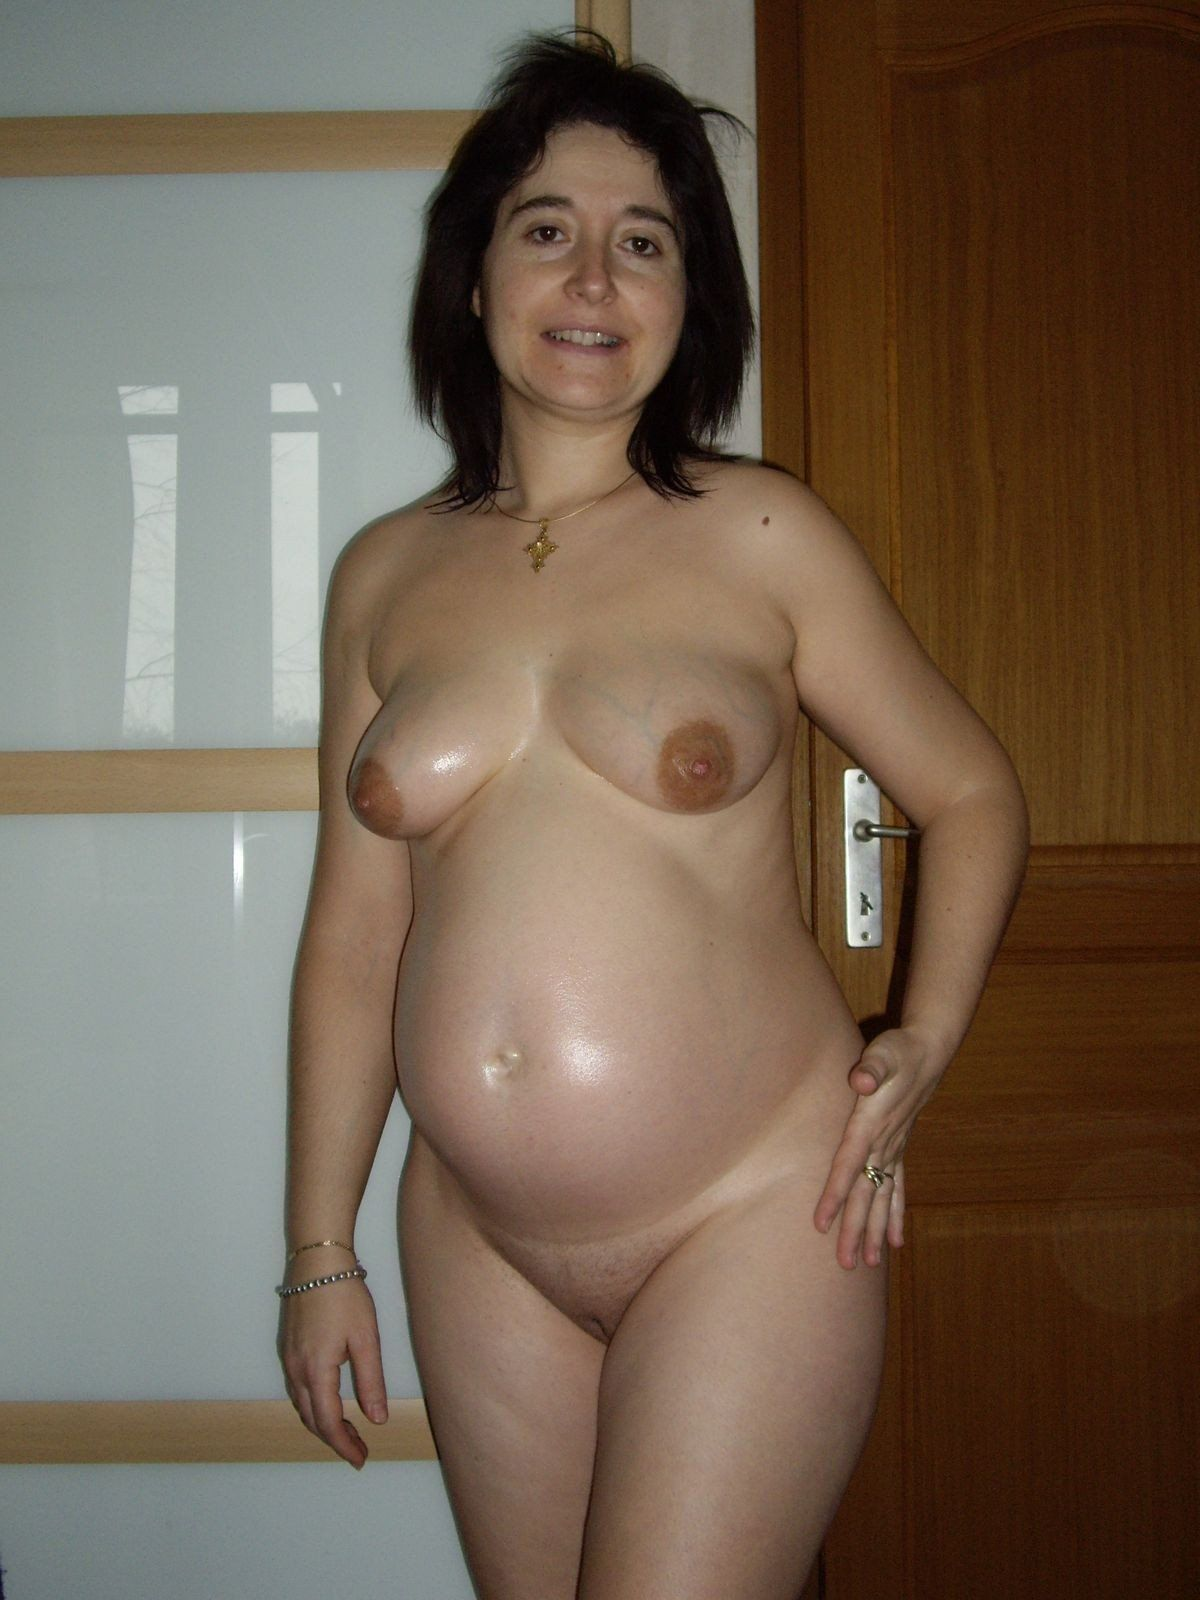 Sexy Mature Crossdressers Photo Gallery - Pregnant mature. BEST porn FREE pics. Comments: 1